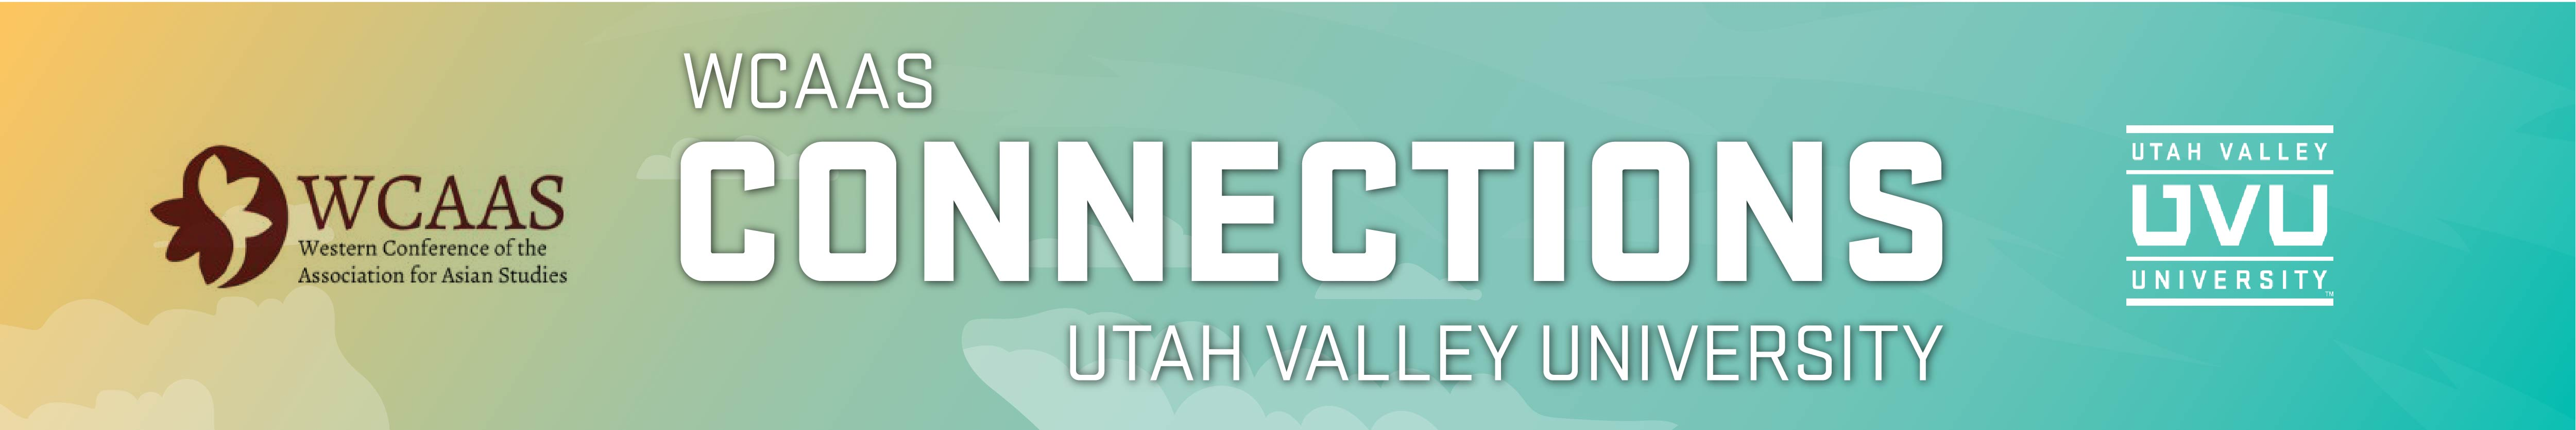 Utah Valley University Tickets